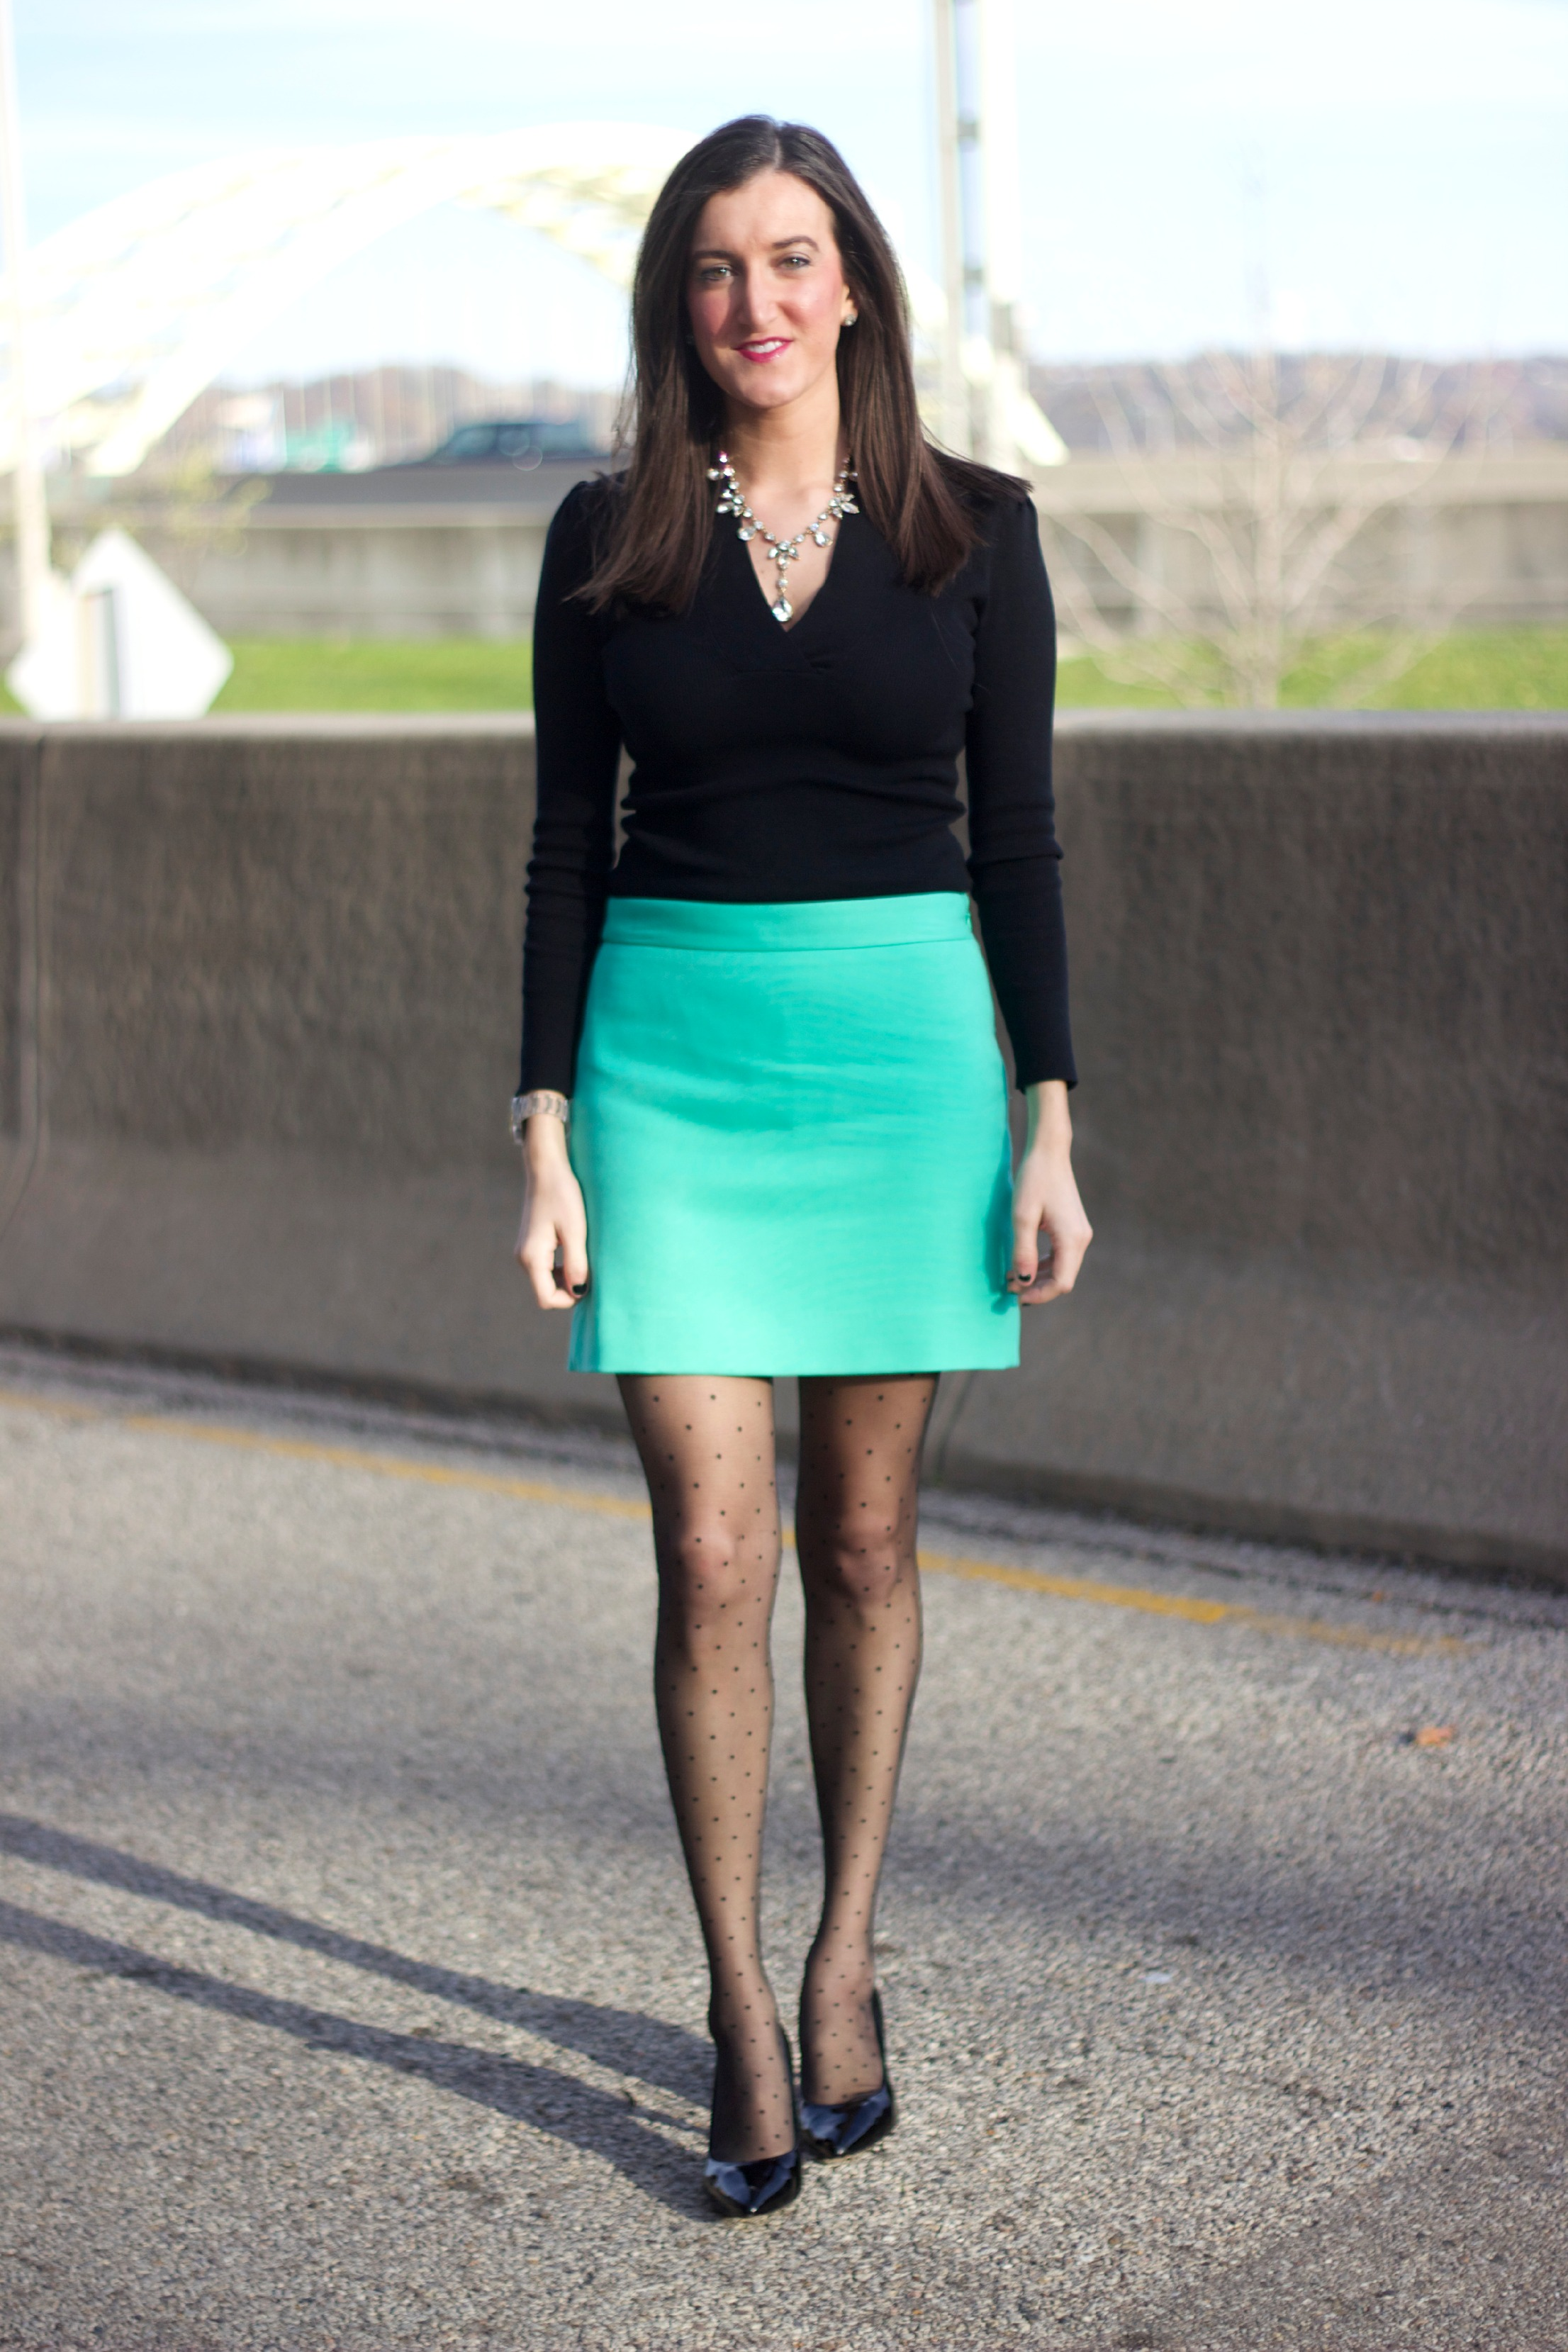 Awesome Beautiful Examples Of Girls In Short Skirts 28